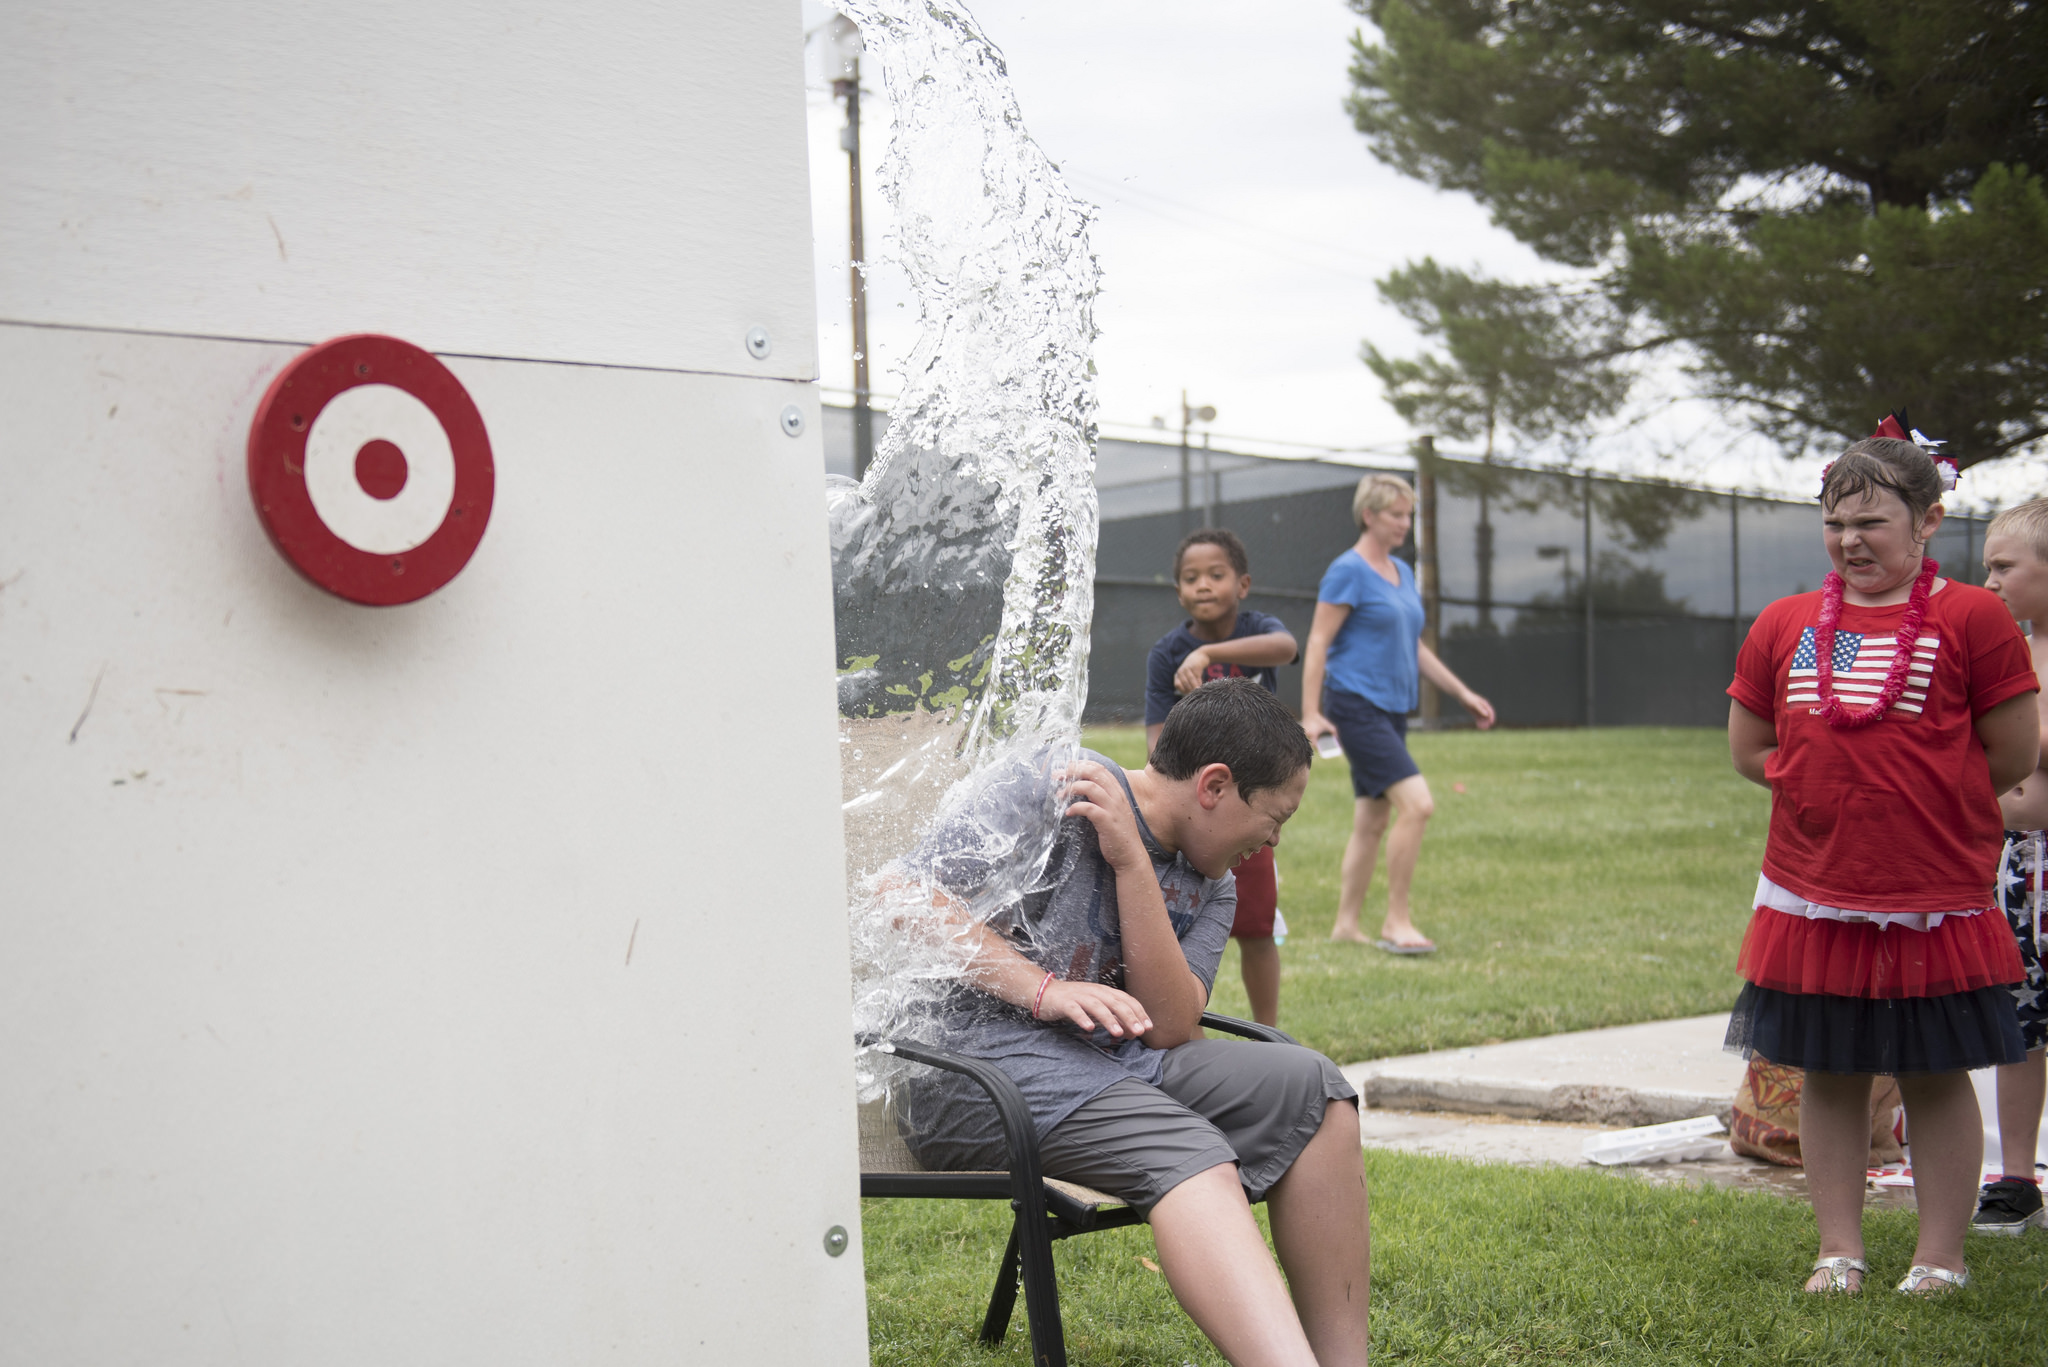 A young teenager participates in a water bucket game at Broadbent Park during the 67th Annual Boulder City Damboree Celebration in Boulder City, Saturday, July 4, 2015.(JASON OGULNIK/BOULDER CITY REVIEW)